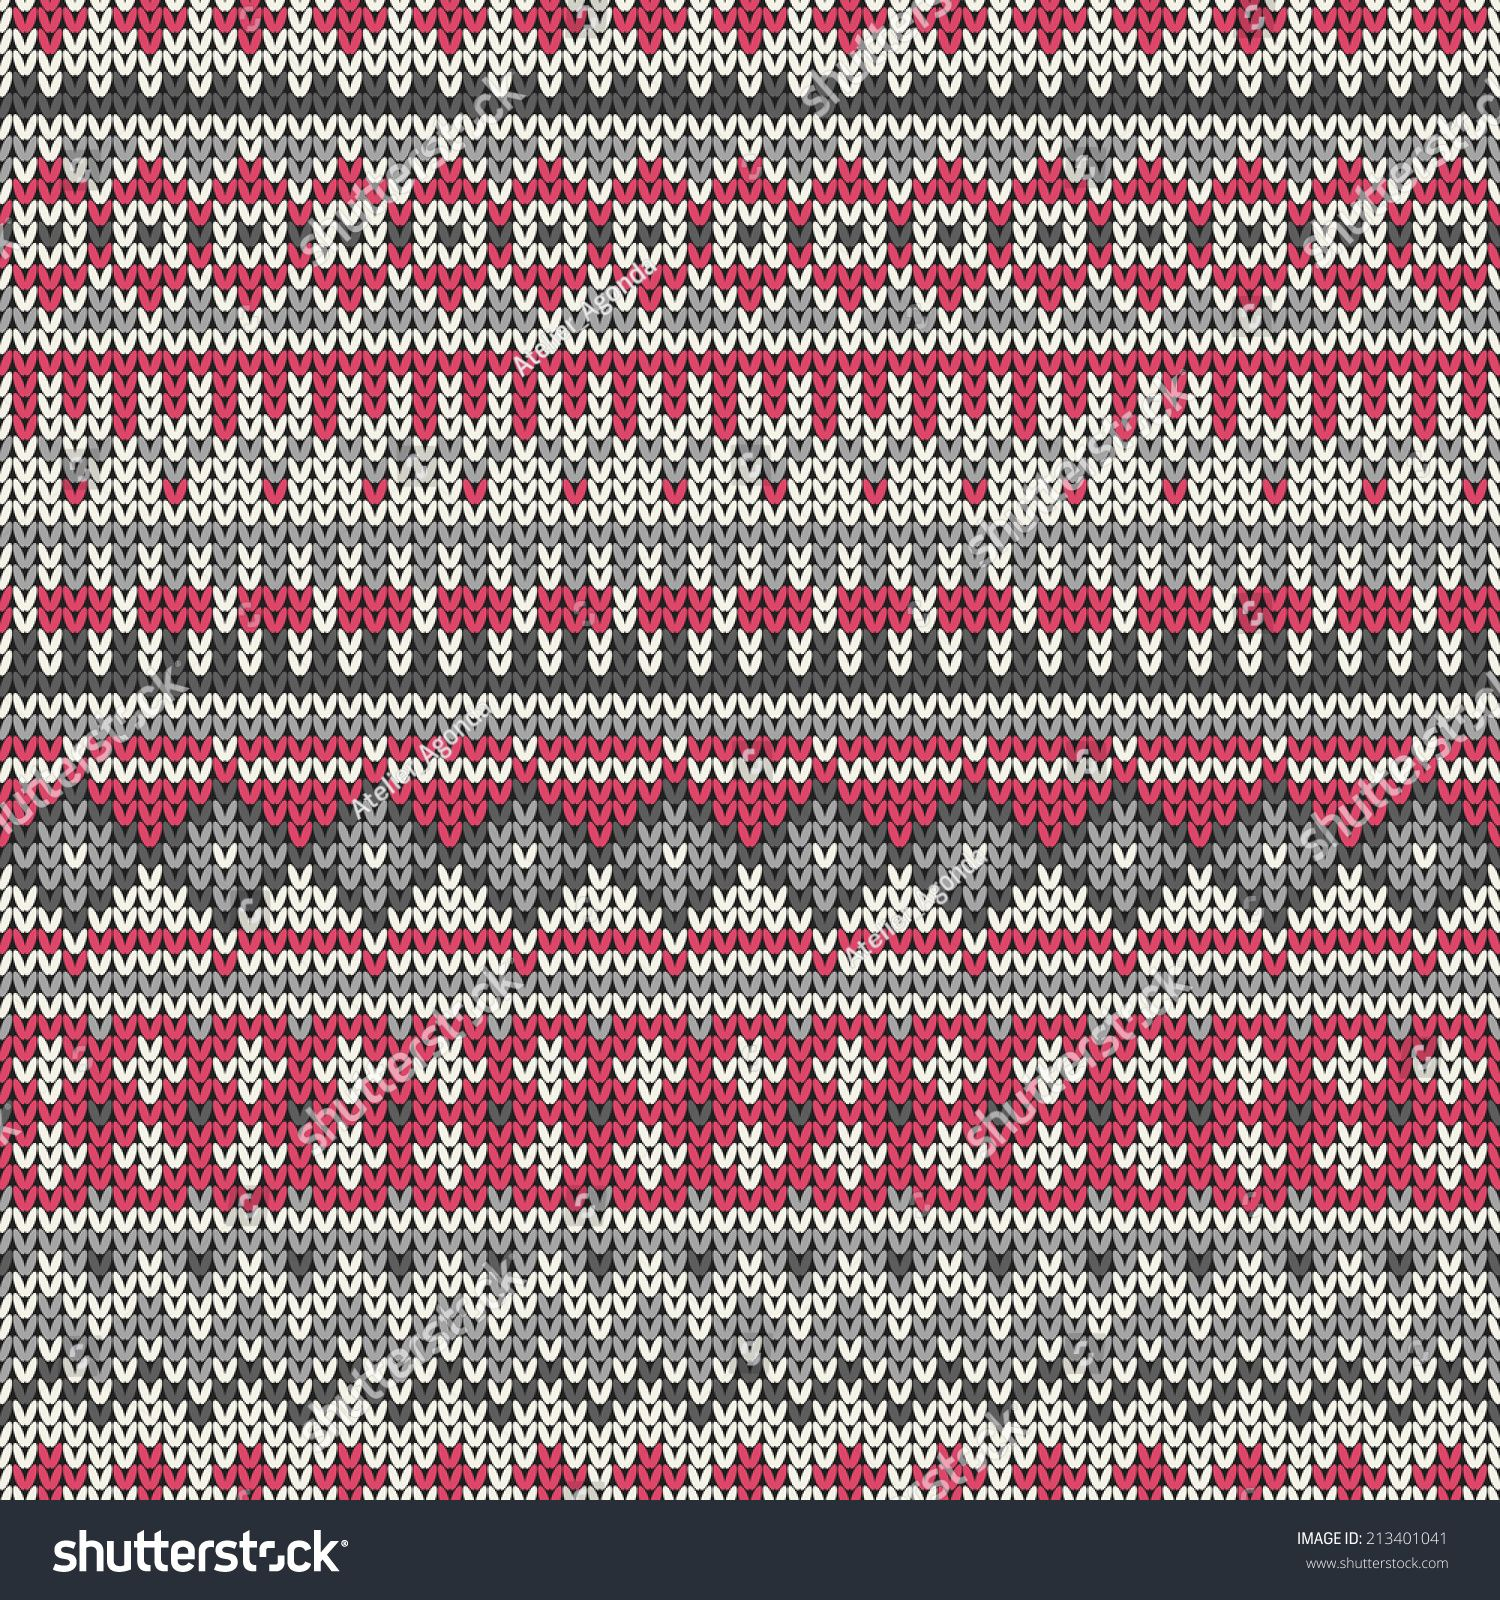 Seamless knitted geometric pattern in traditional fair isle style seamless knitted geometric pattern in traditional fair isle style vector illustration bankloansurffo Choice Image